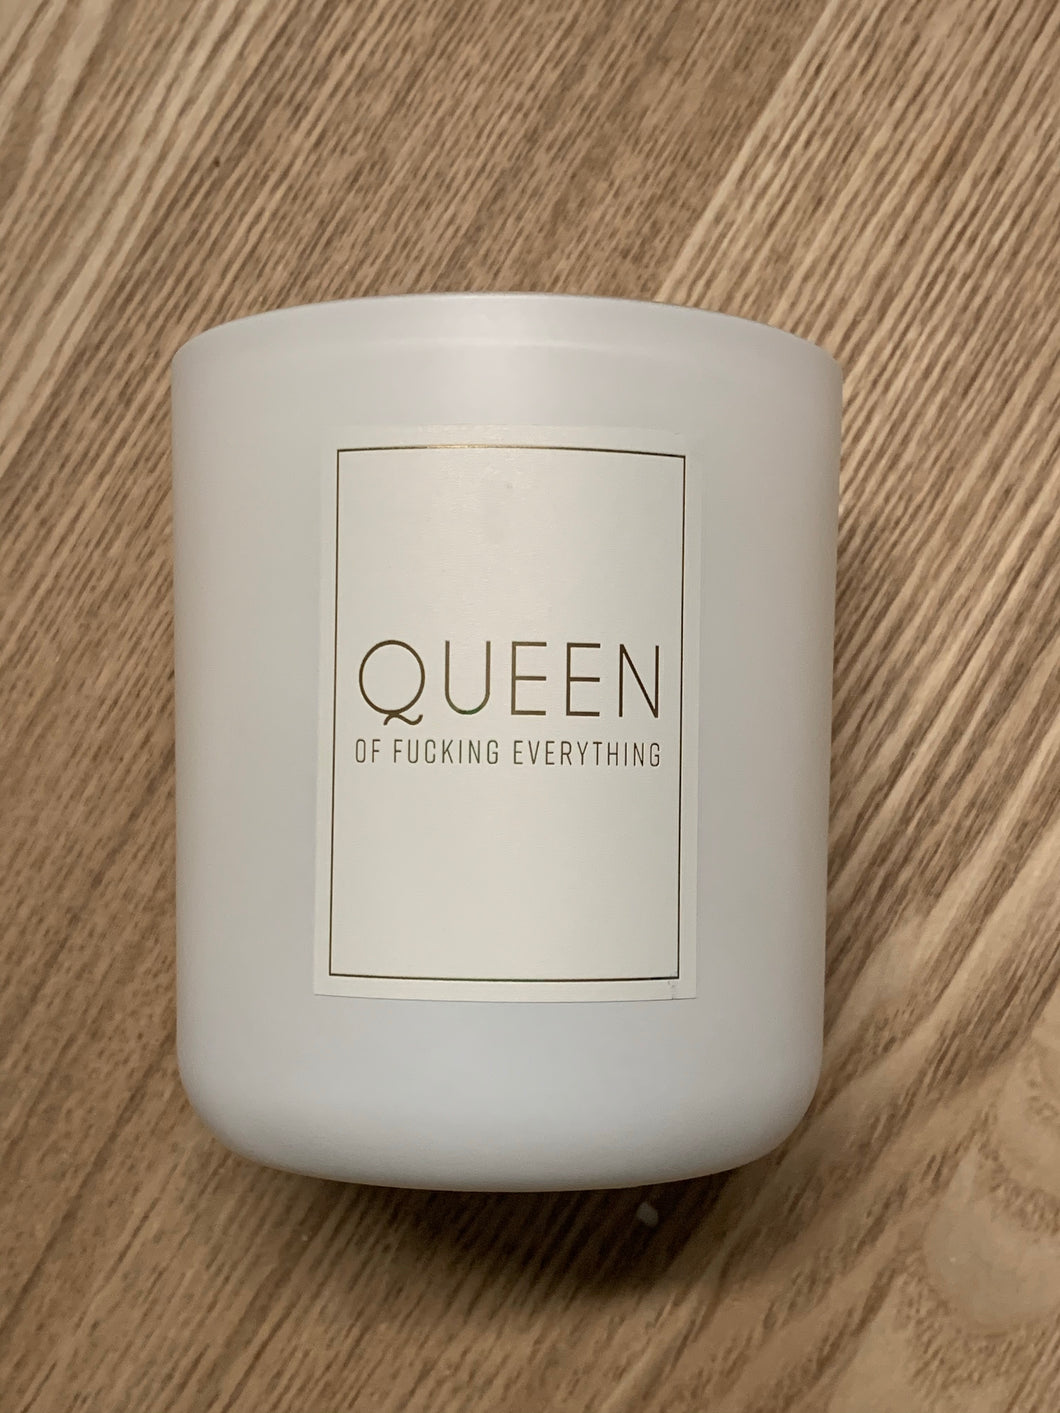 Cuss series - Queen of fucking everything - Soy candle